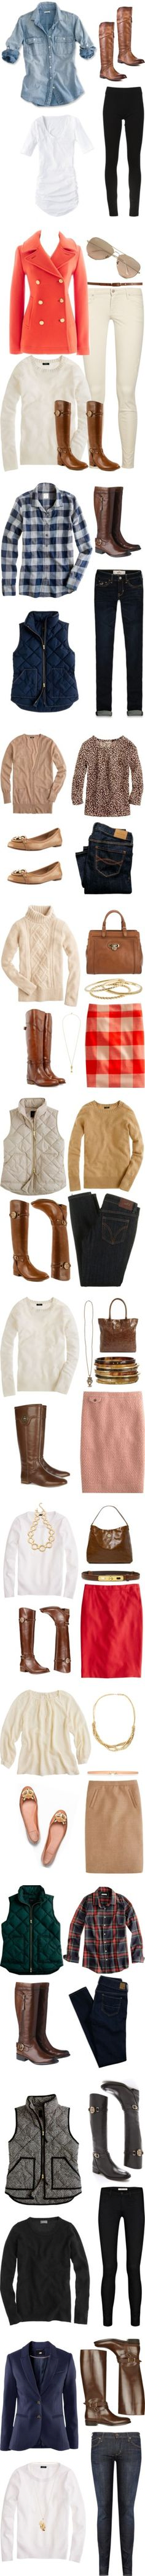 Great pieces for a cozy fall wardrobe!!